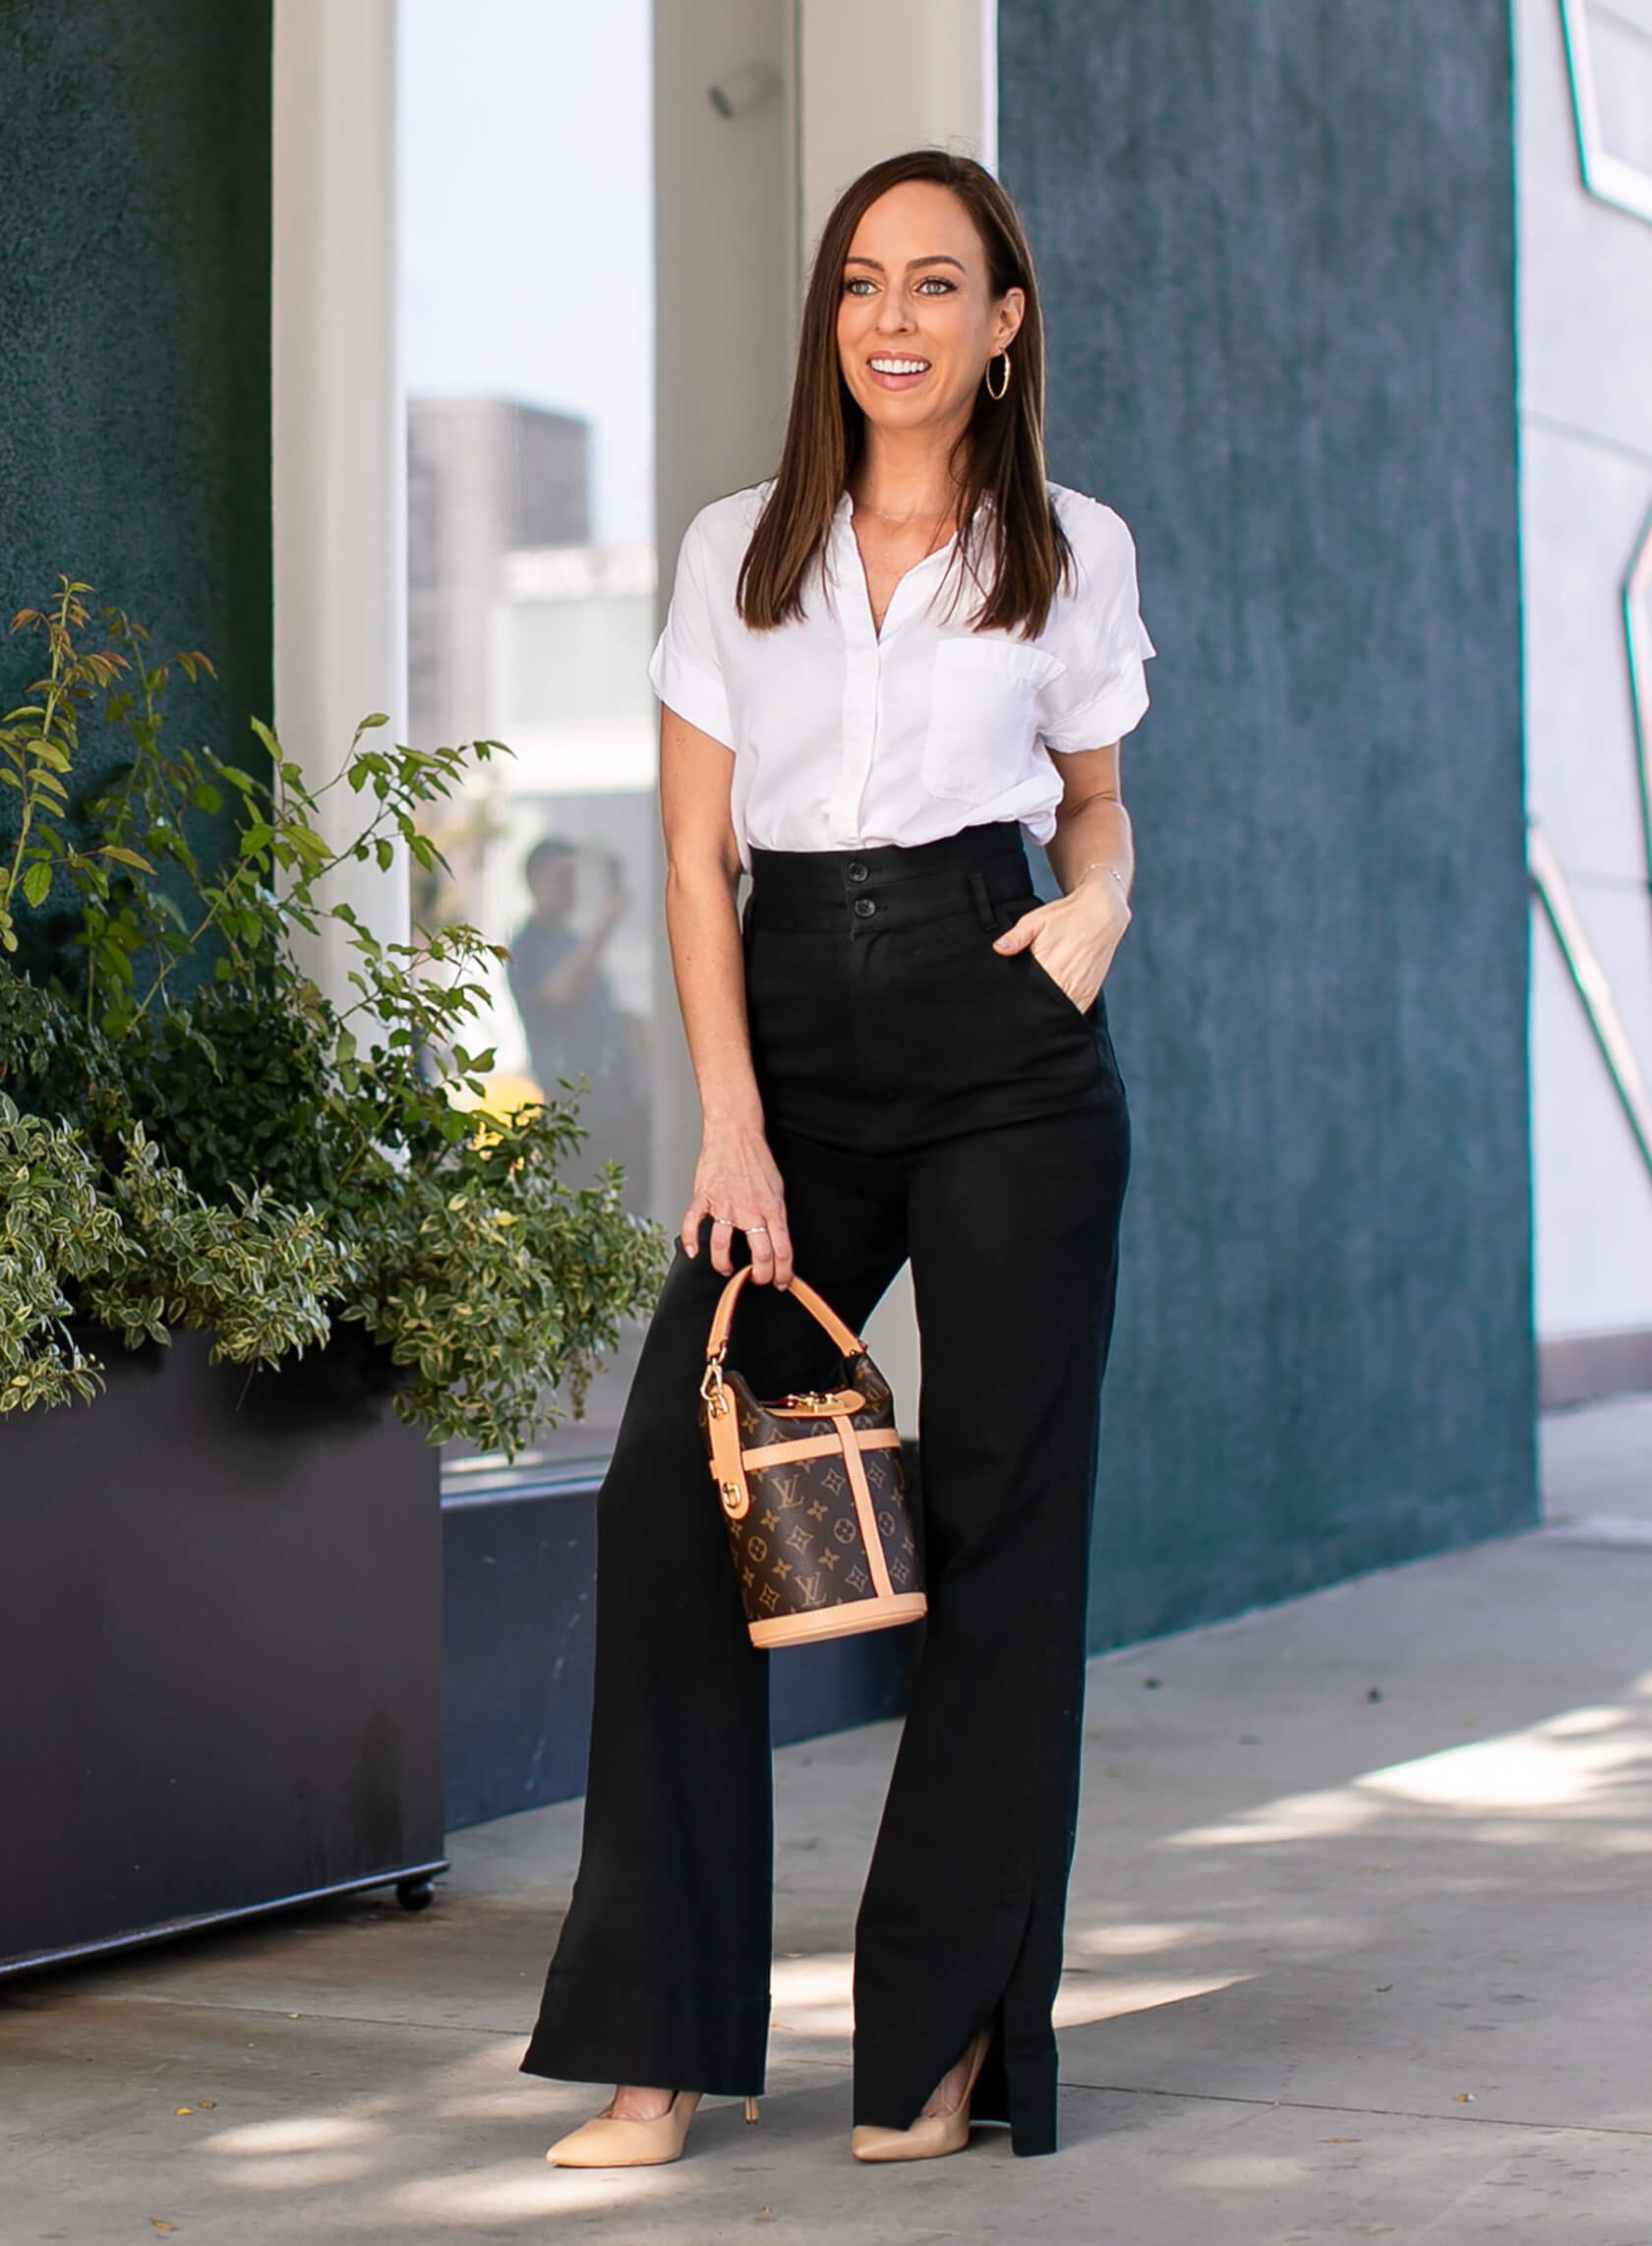 High Waisted Black Pants From Work To The Weekend Sydne Style Black High Waisted Pants High Waisted Pants Outfit Classic Outfits [ 2284 x 1680 Pixel ]